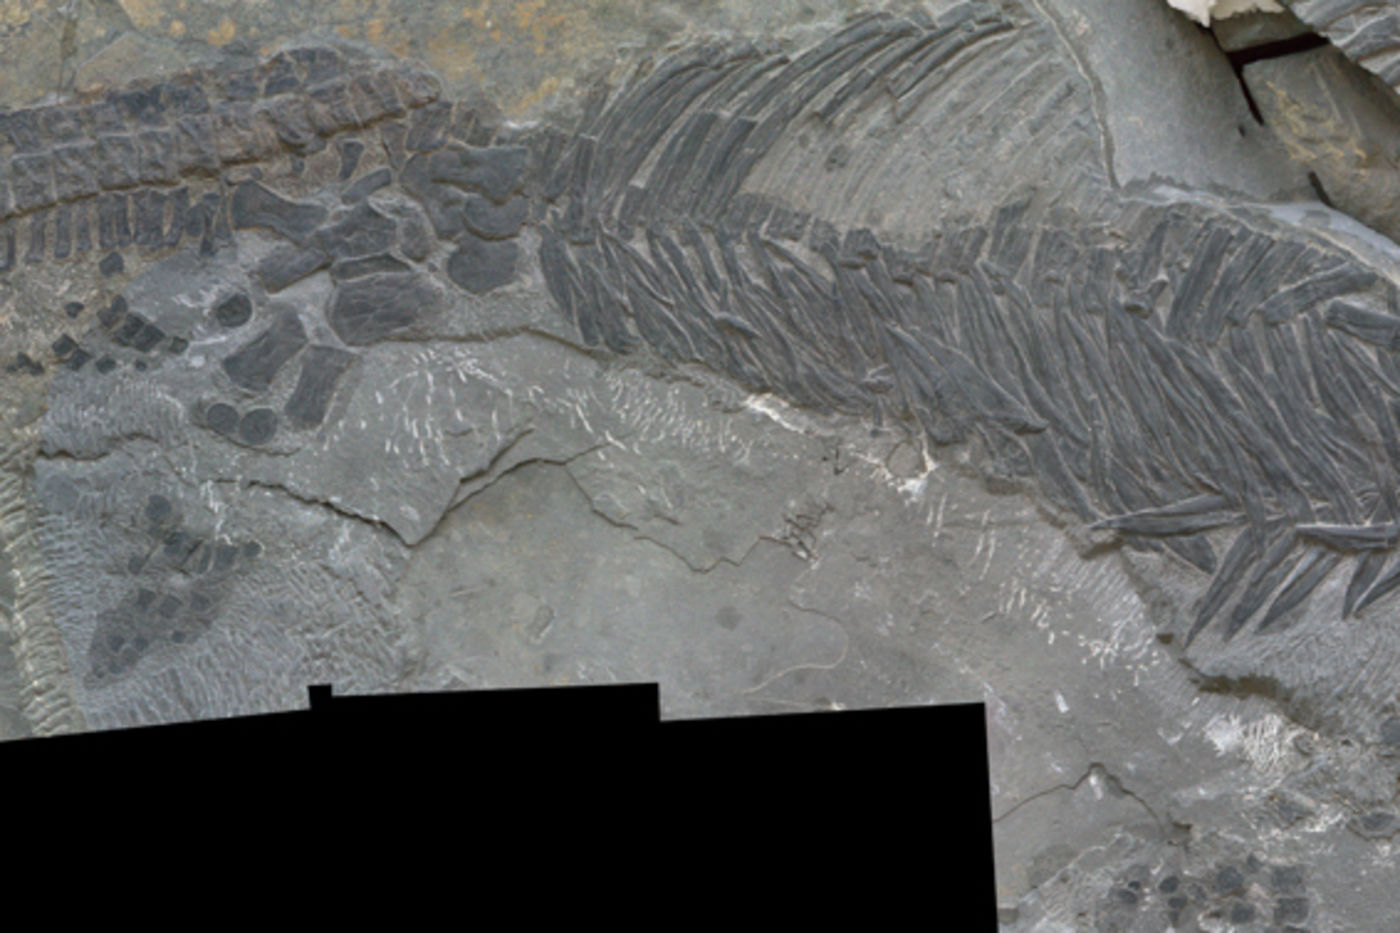 A fossil of a Sclerocormus parviceps, a sea-dwelling reptile, shown with a ruler to show scale.